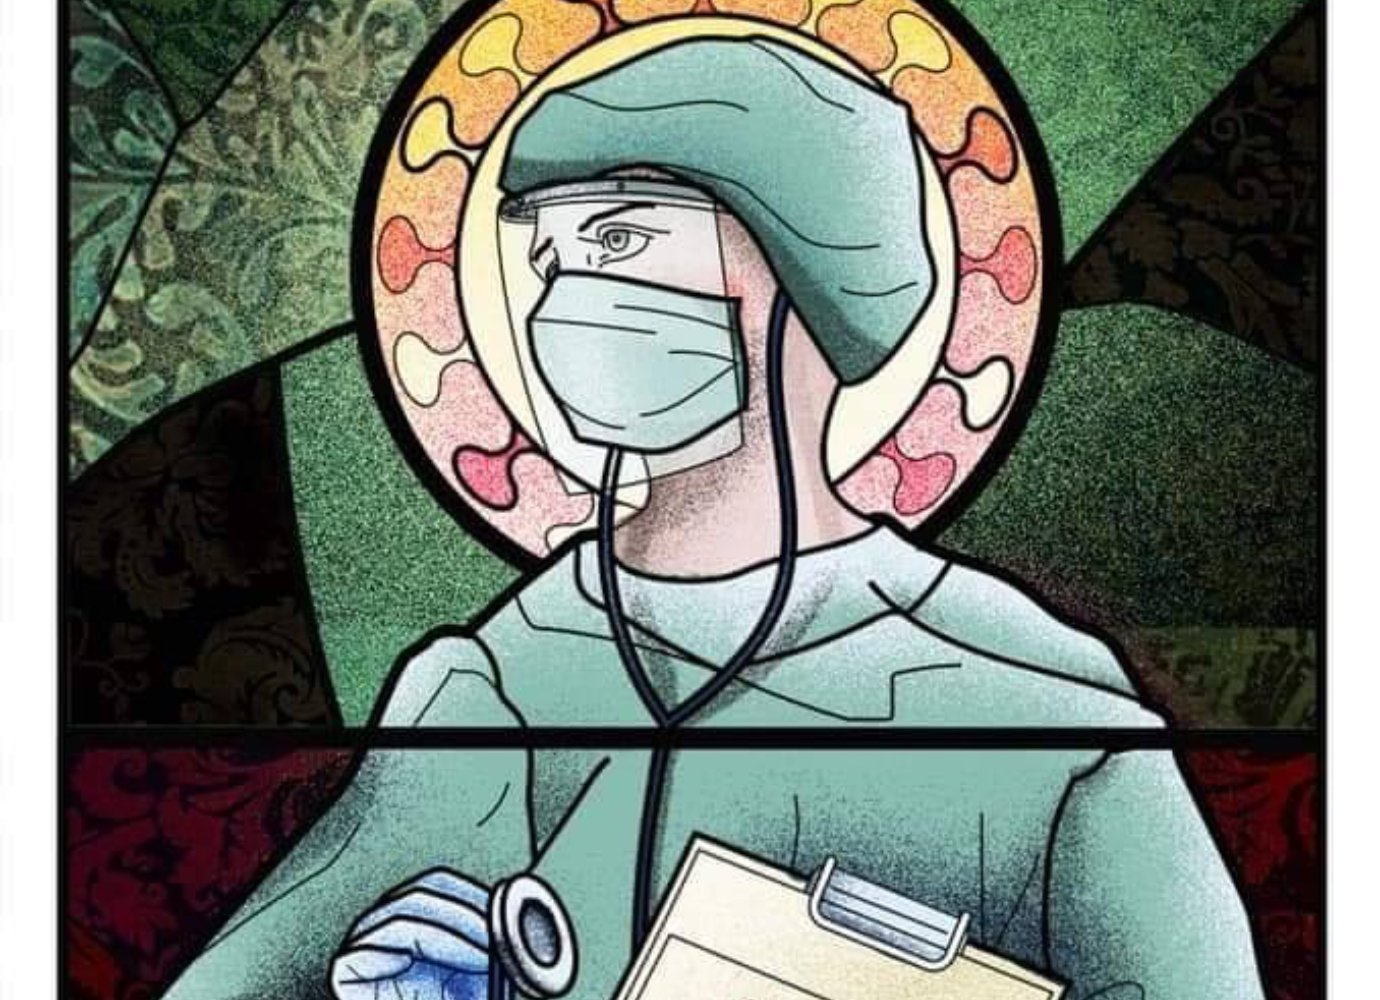 Posters depicting doctors and medical staff as saints deemed 'satanist' in Romania